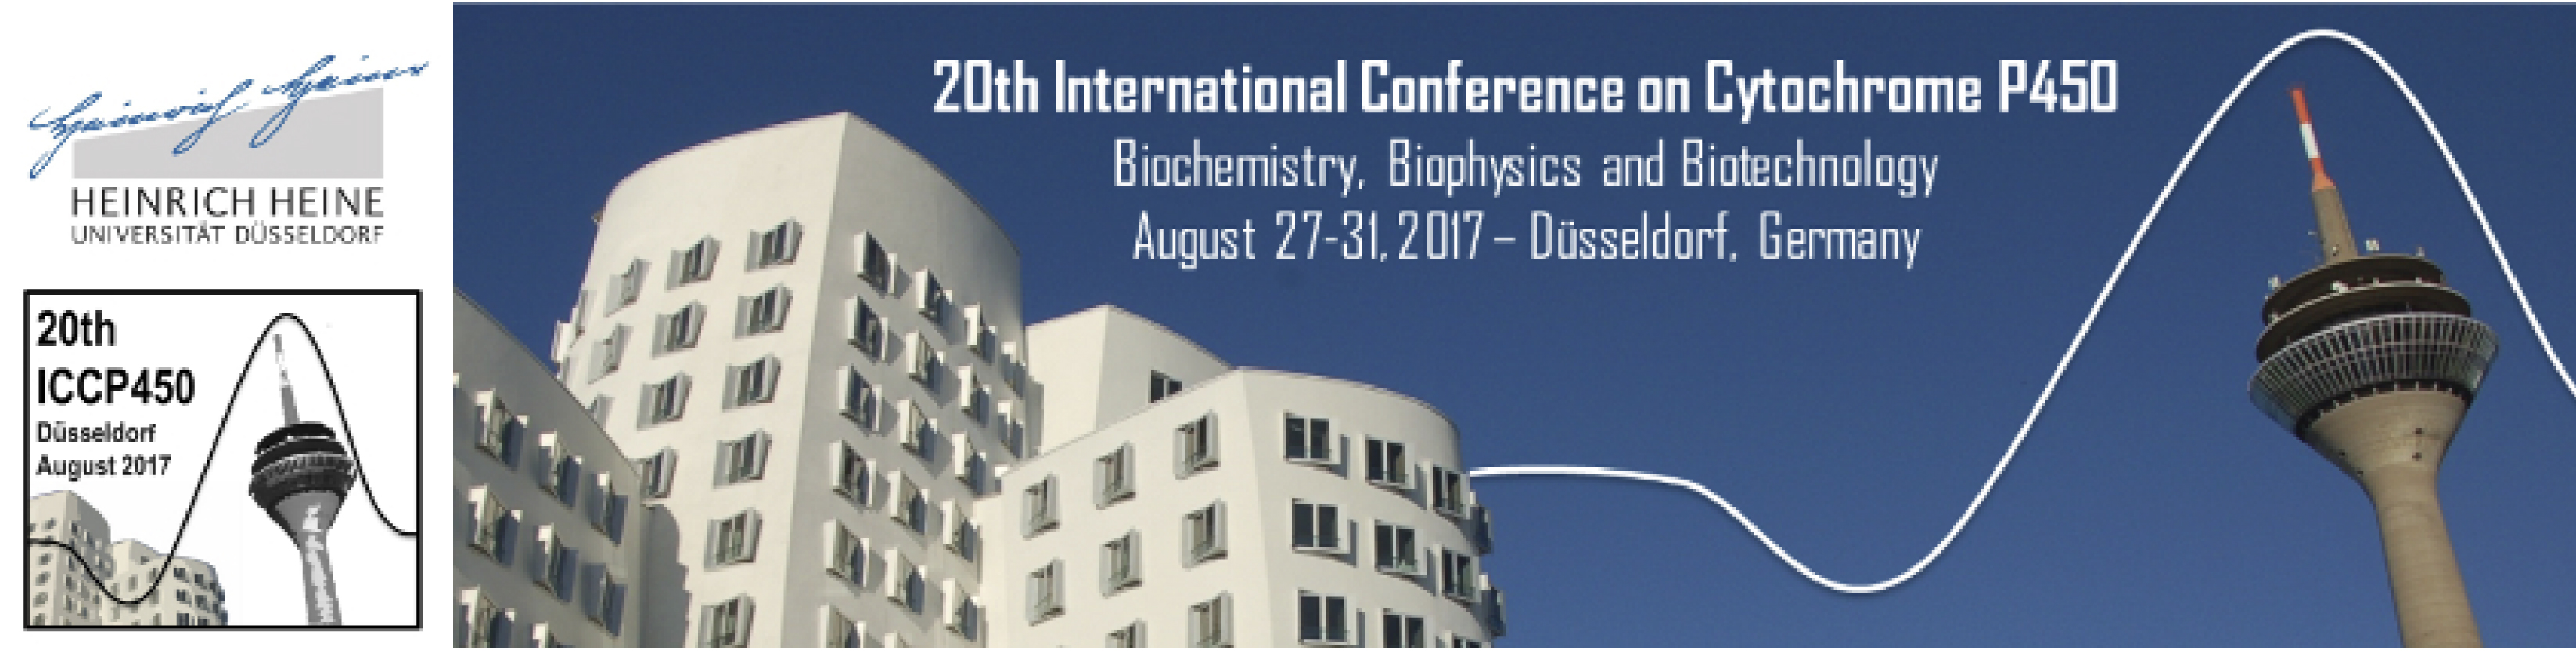 tebu-bio will be at 20th International Conference on Cytochrome P450